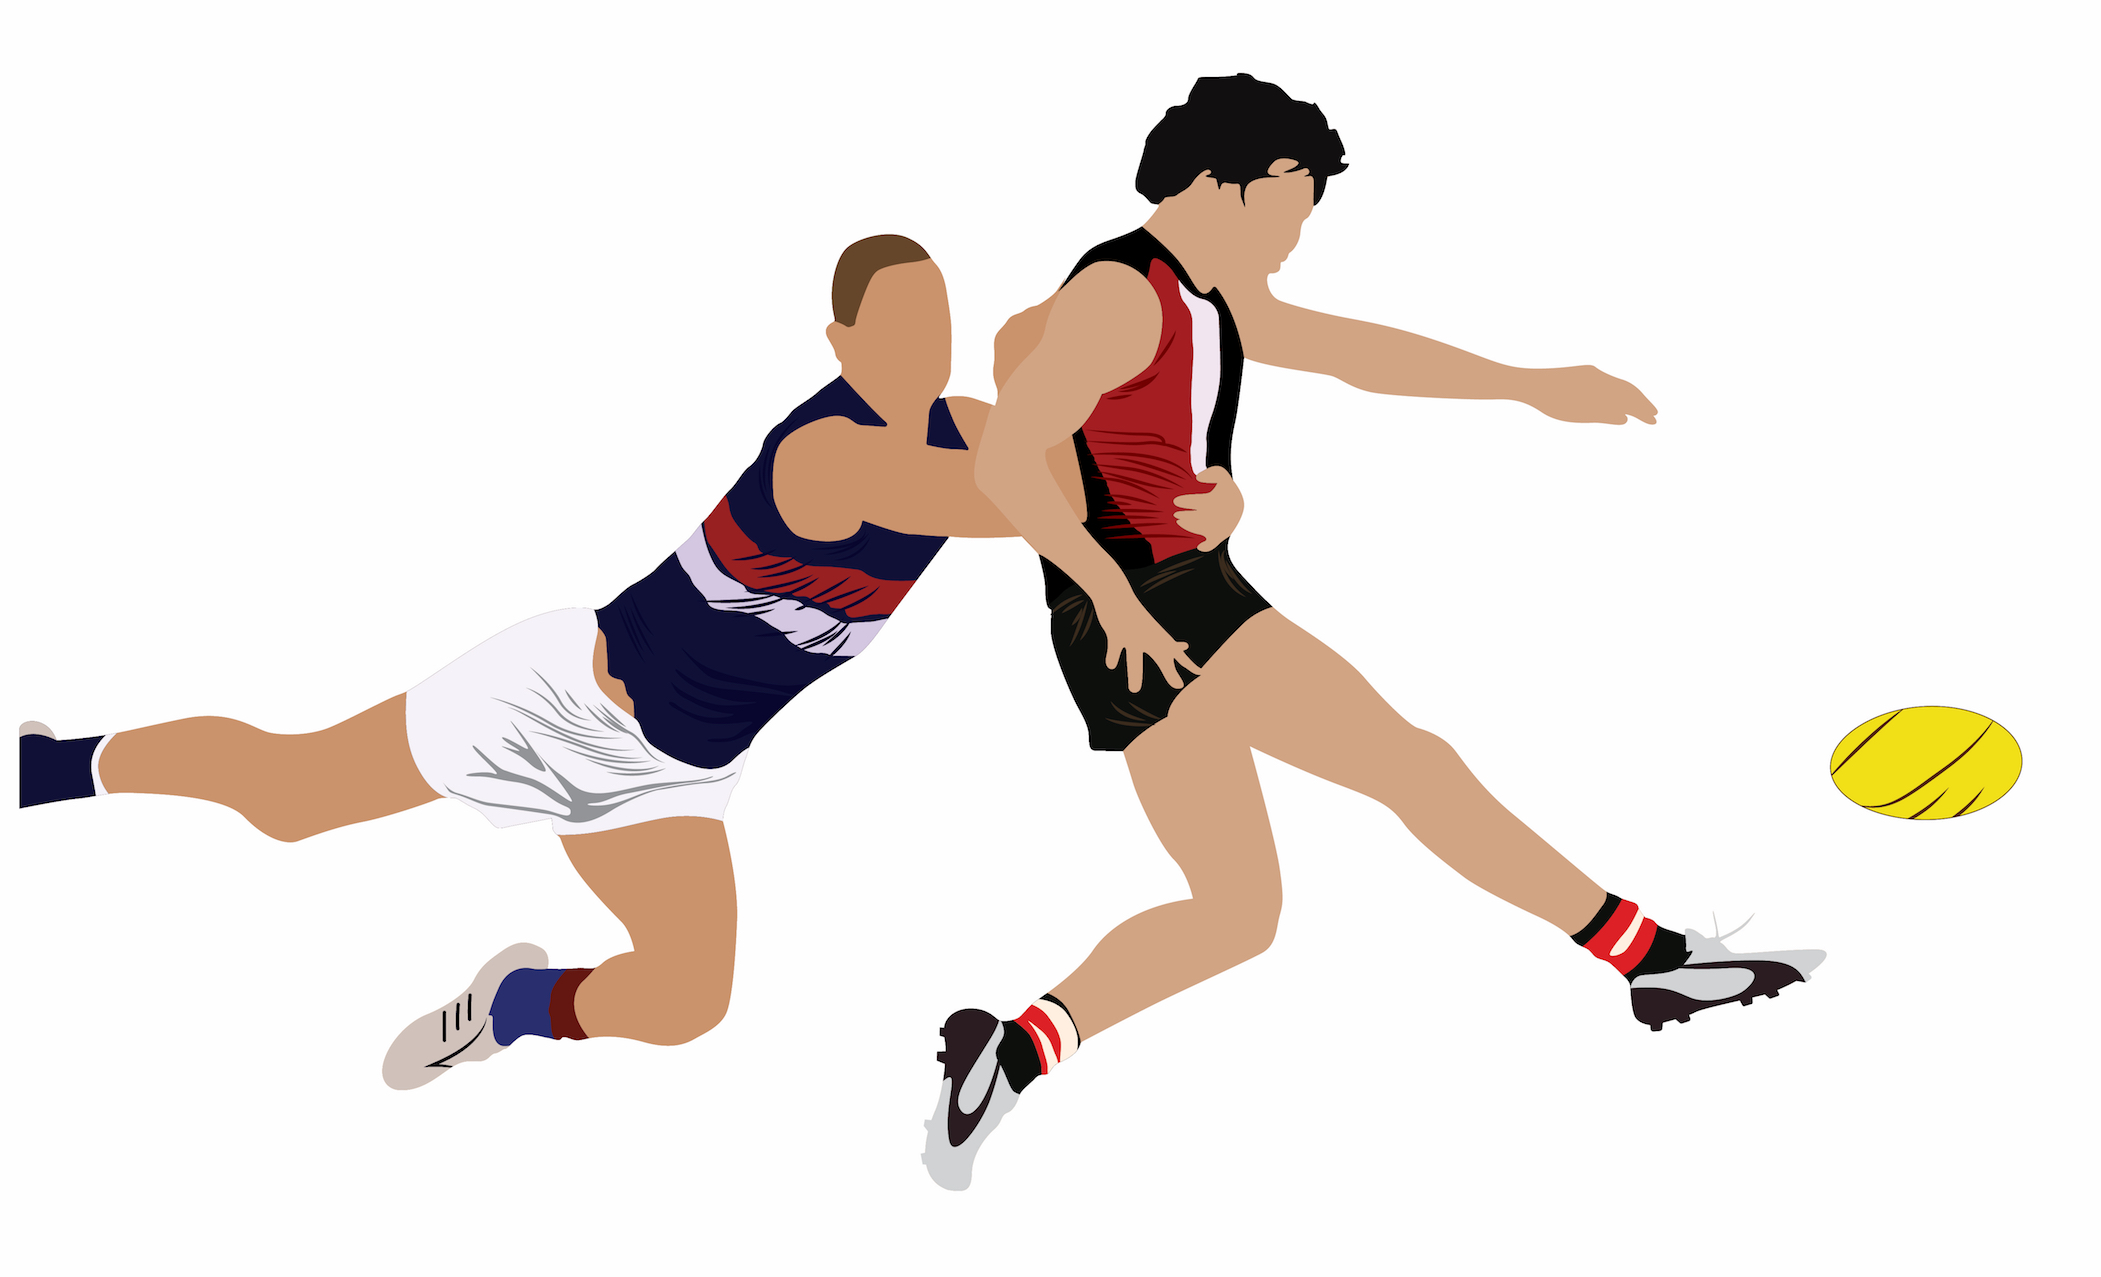 tackle in afl